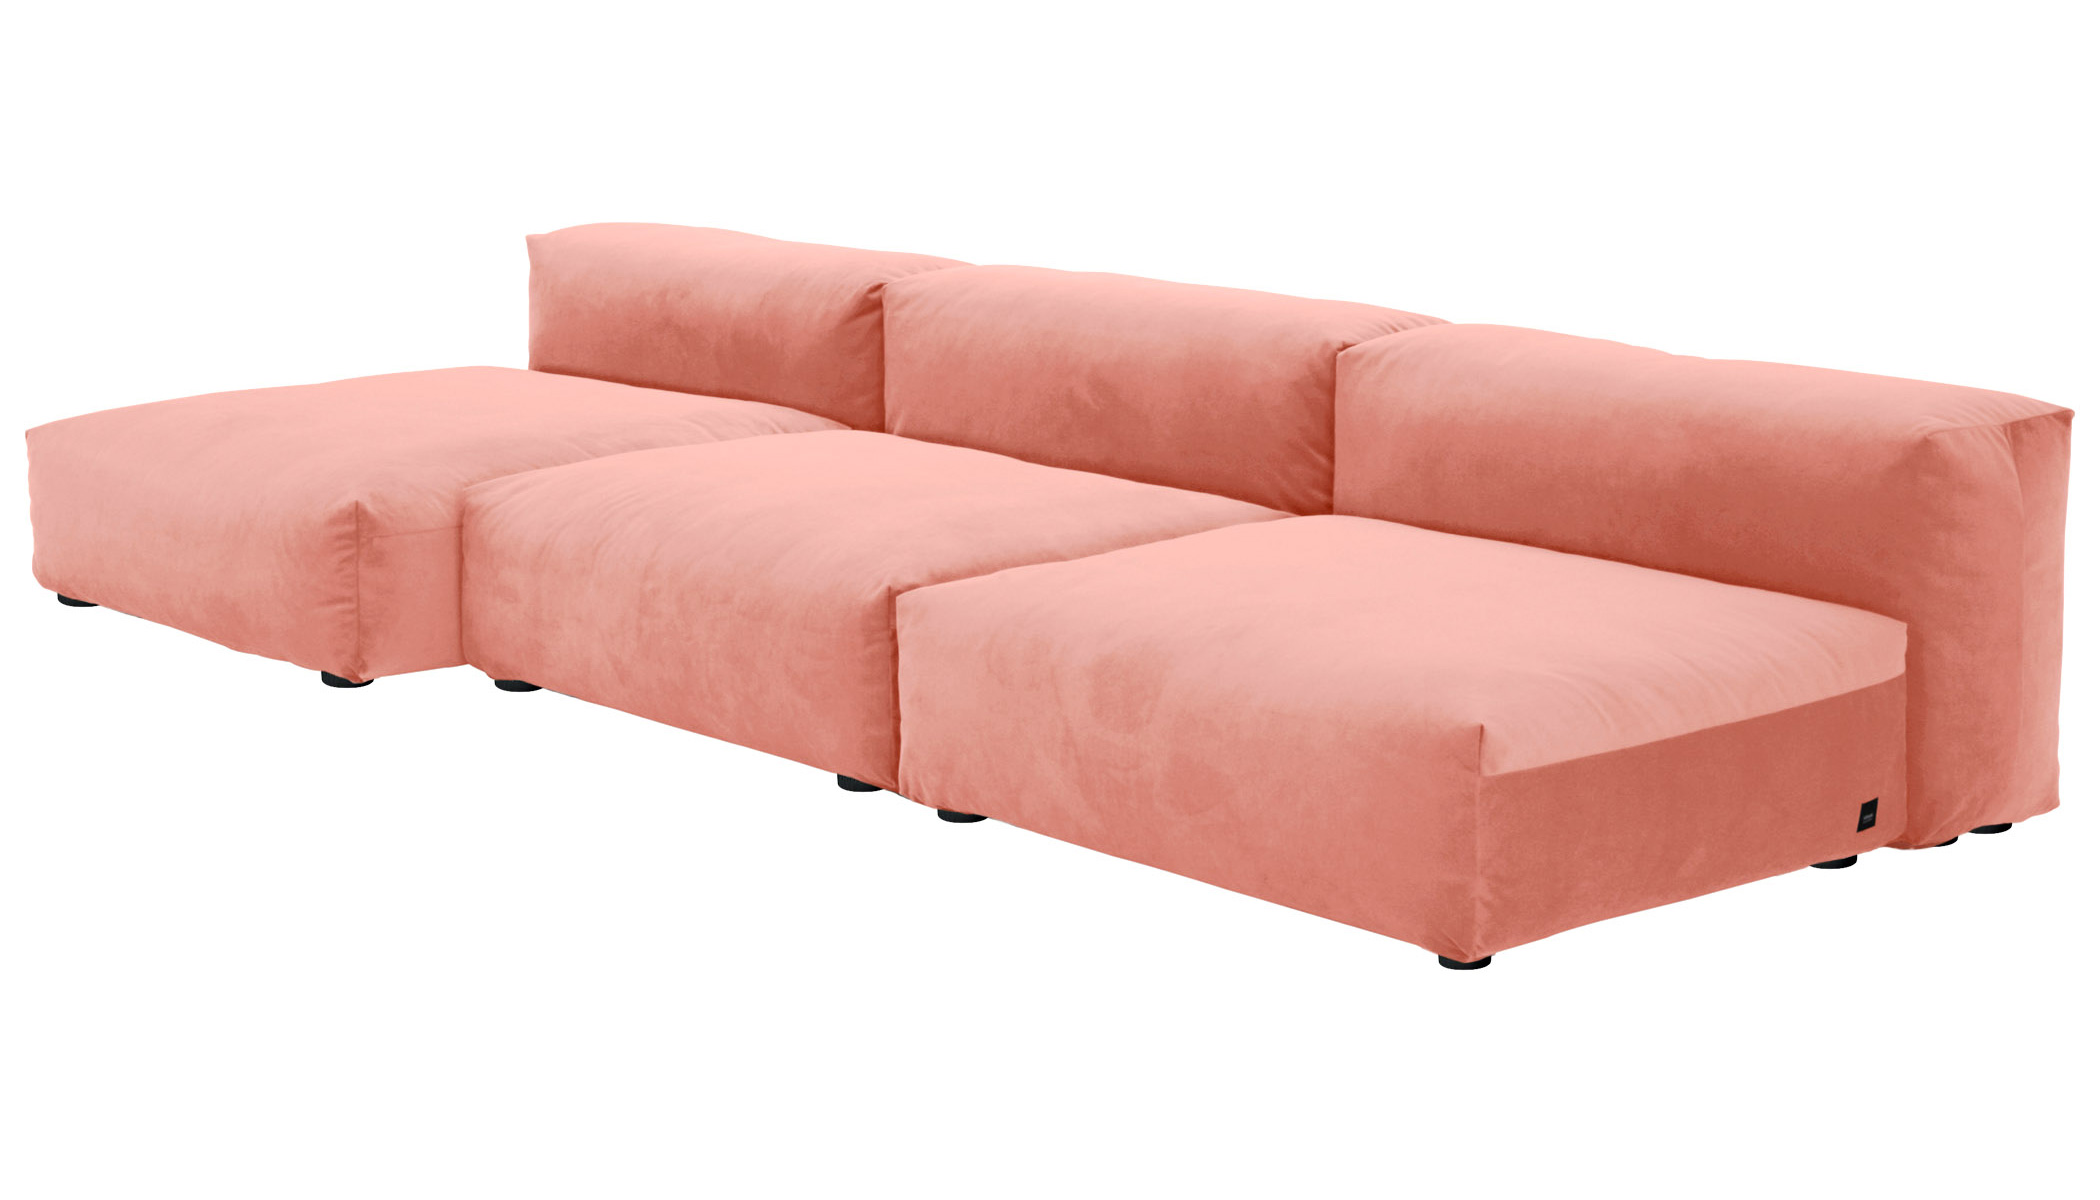 Sofa 1 Large 2 Medium 3 Side Velvet peach